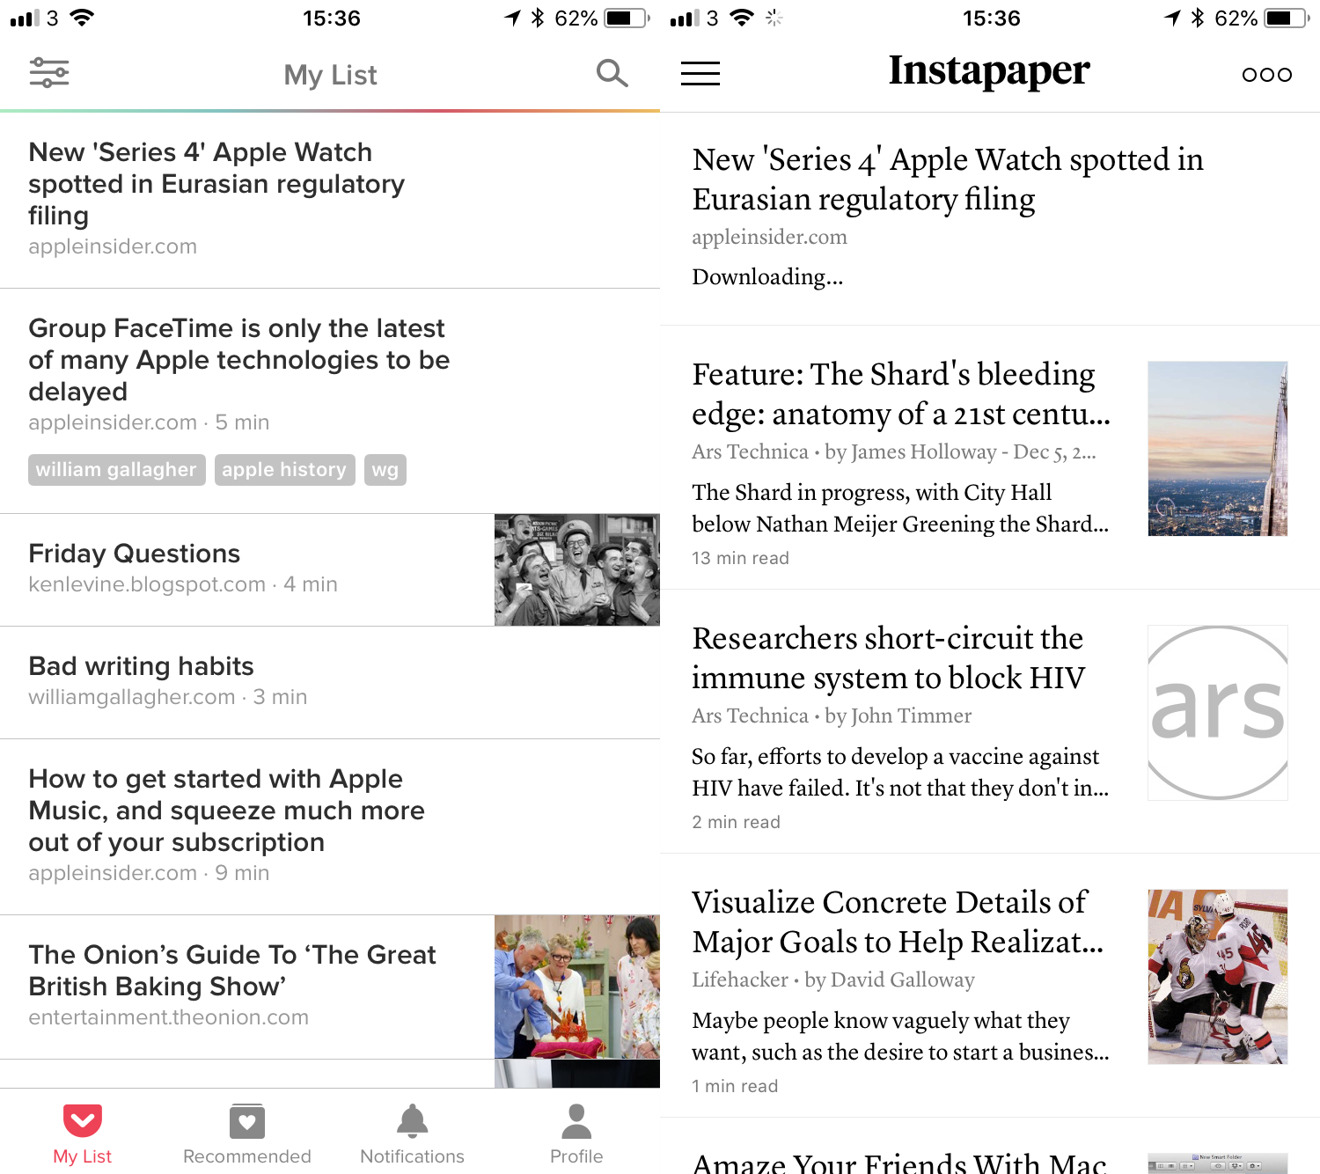 Left: Pocket on iPhone. Right: Instapaper